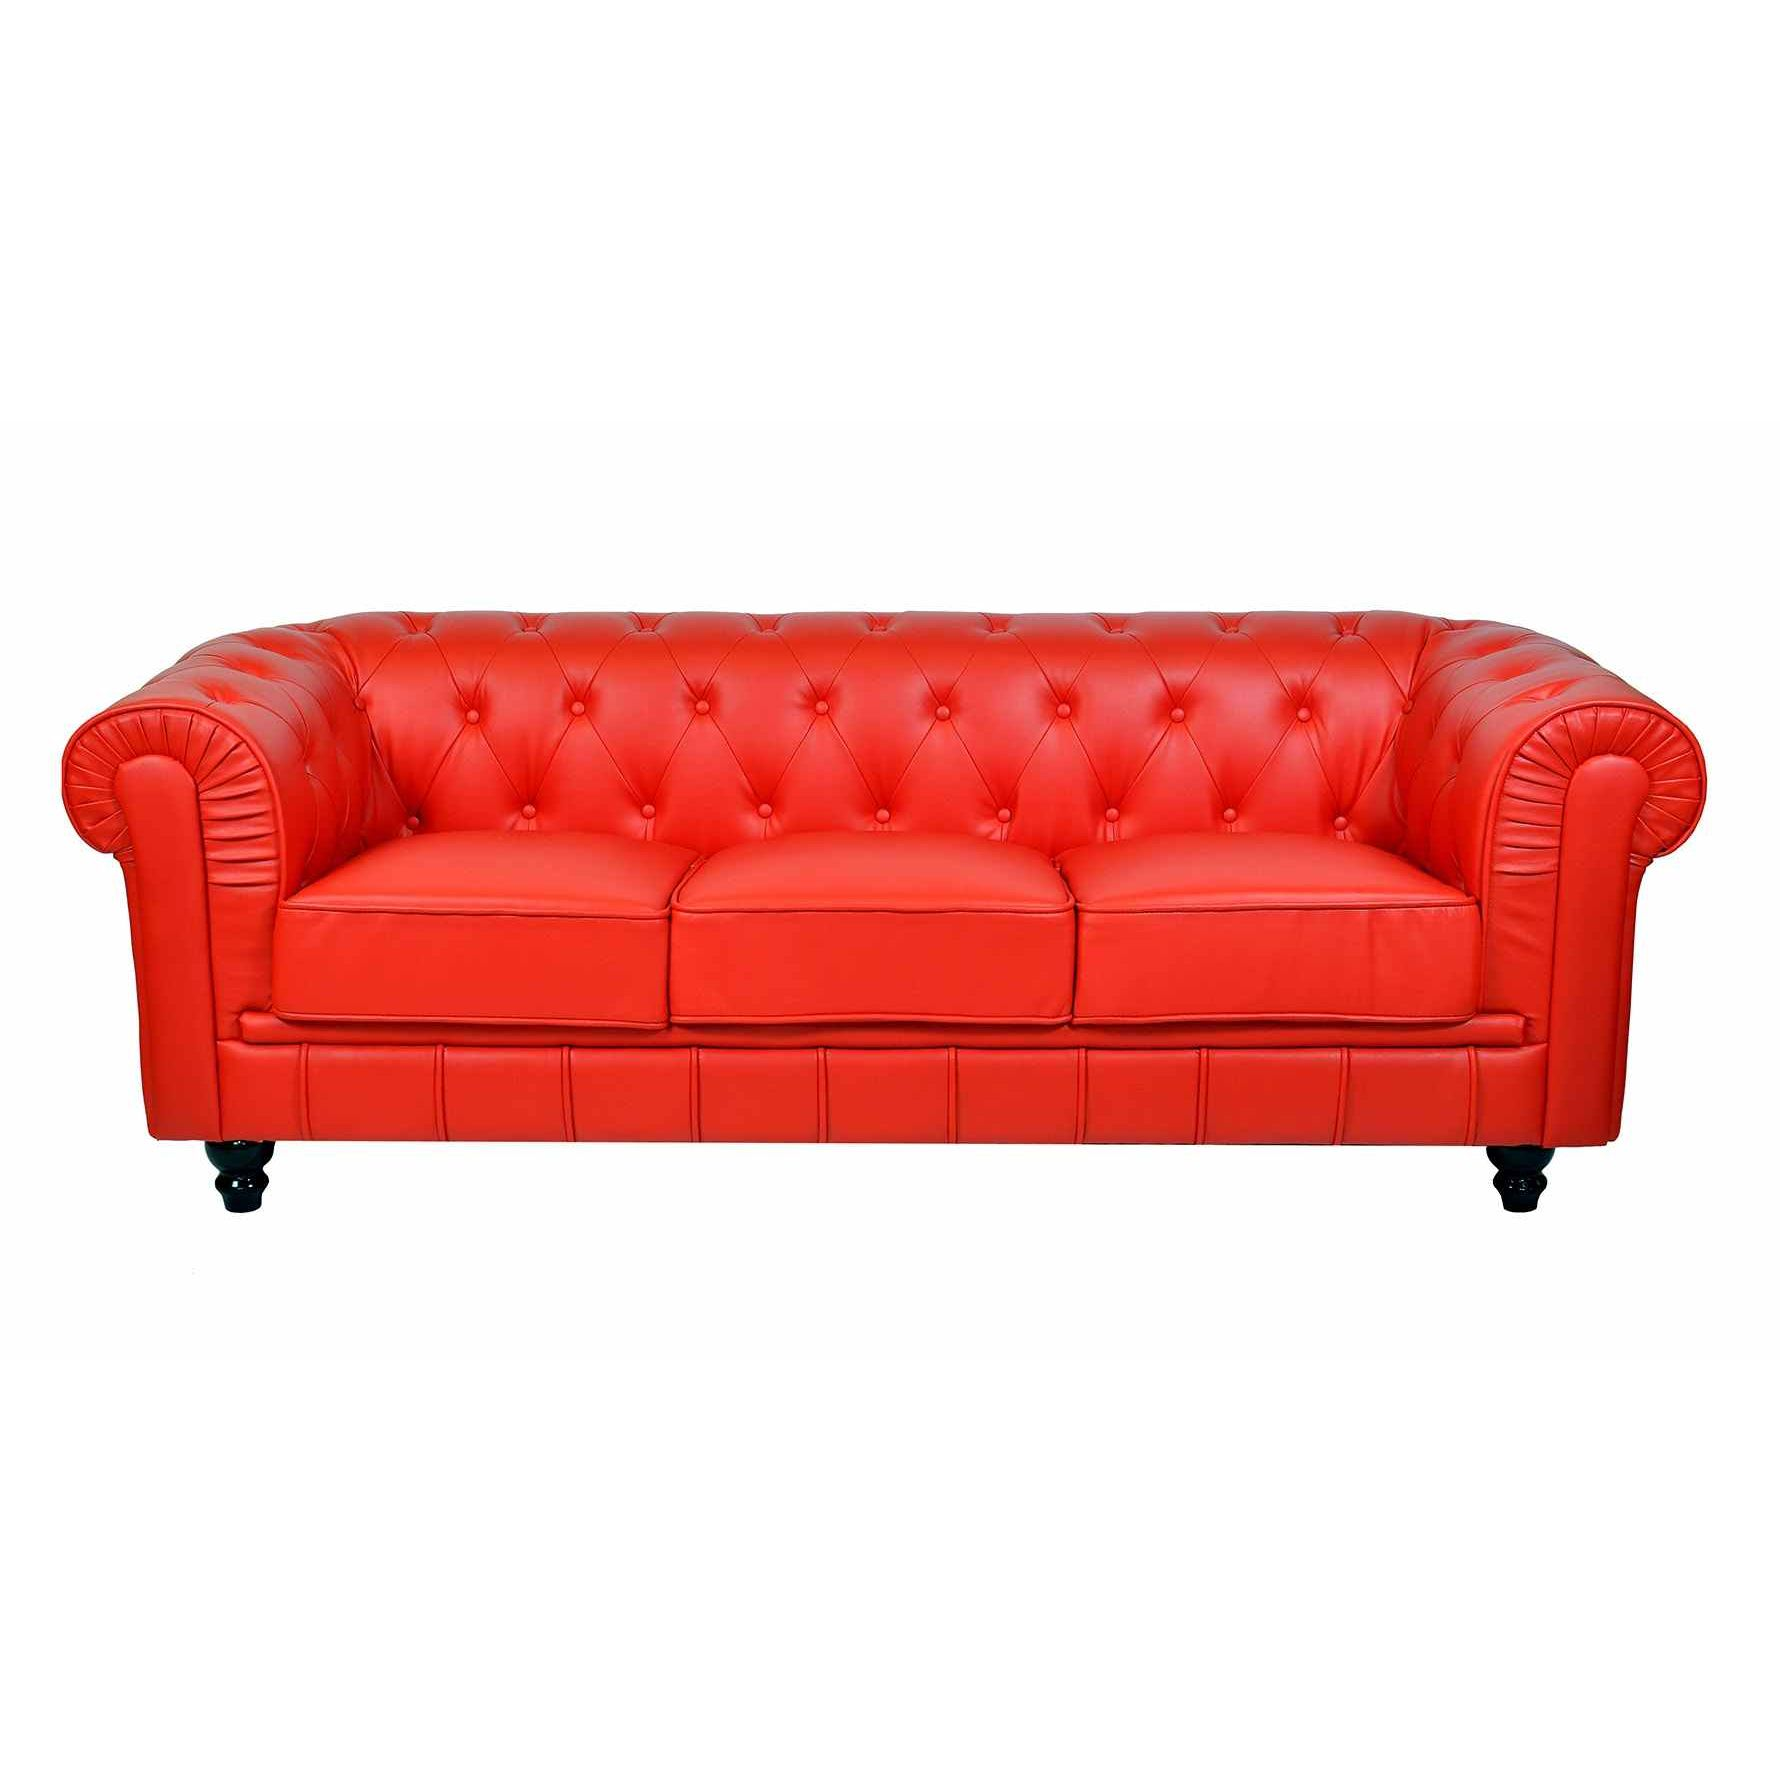 Deco In Paris Canape Chesterfield 3 Places Rouge Can